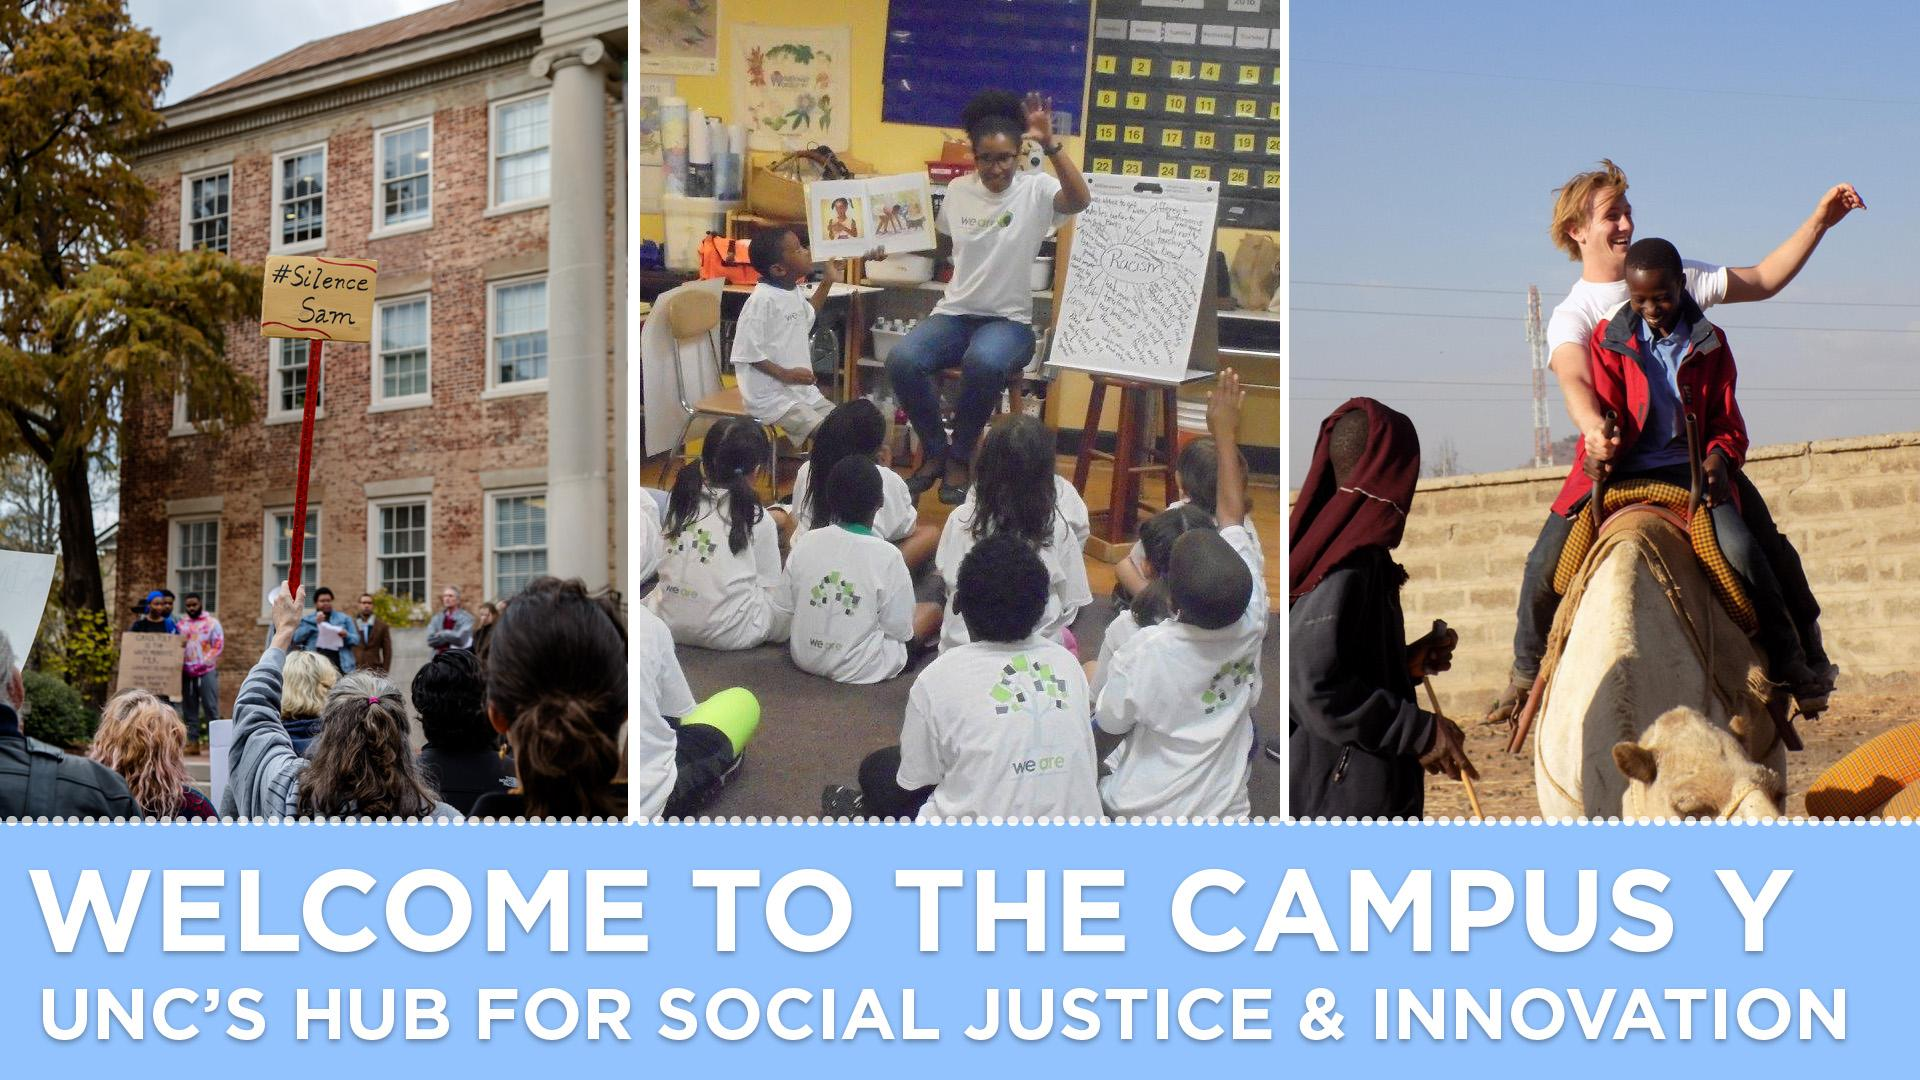 Welcome to the Campus Y, UNC's Hub for Social Justice & Innovation